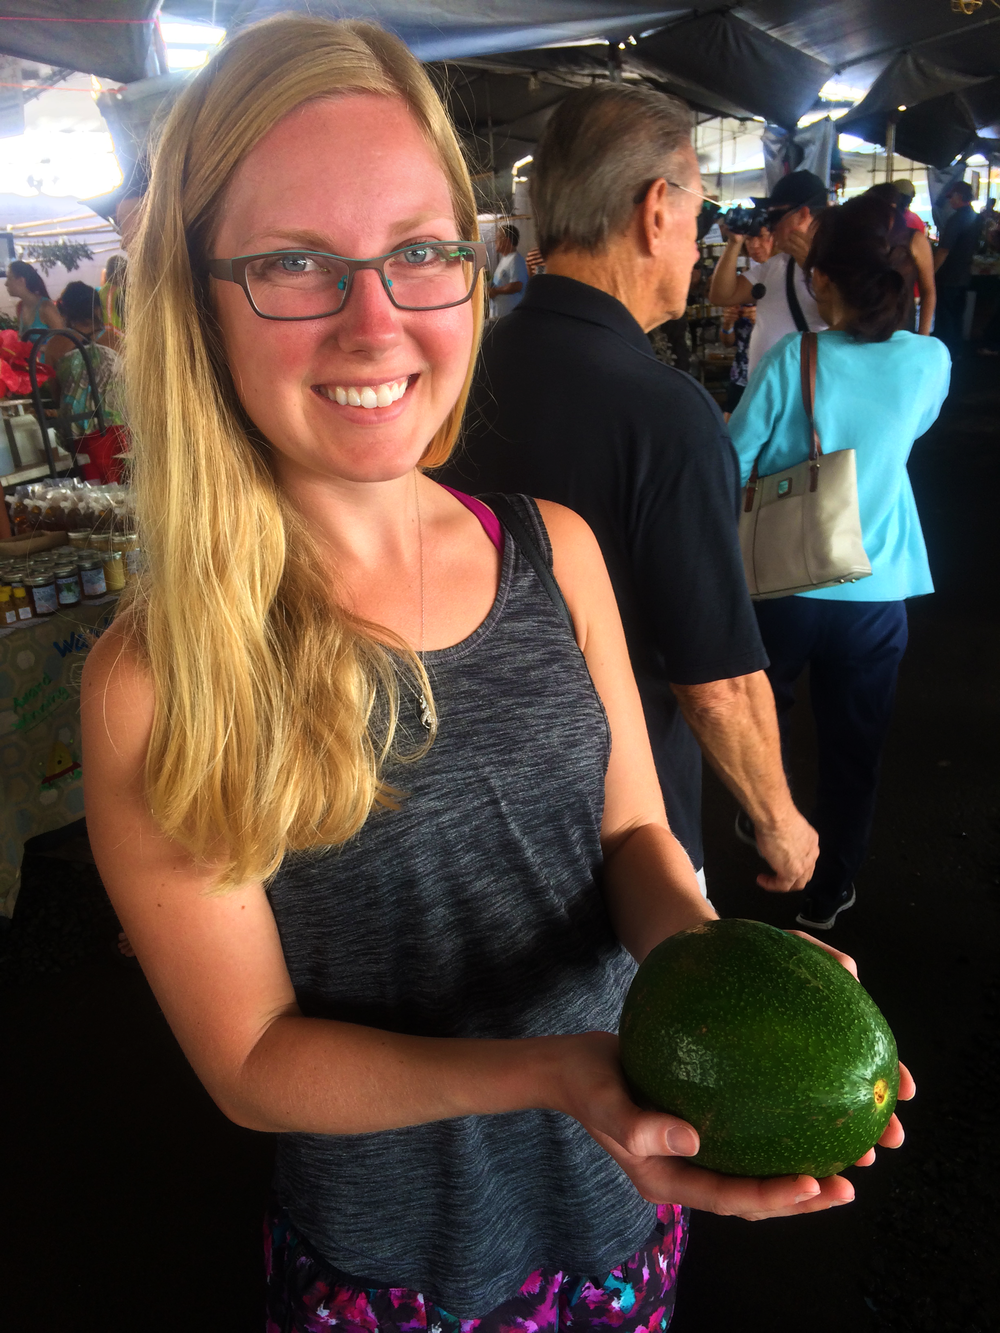 Giant avocados at the Hilo Farmers Market